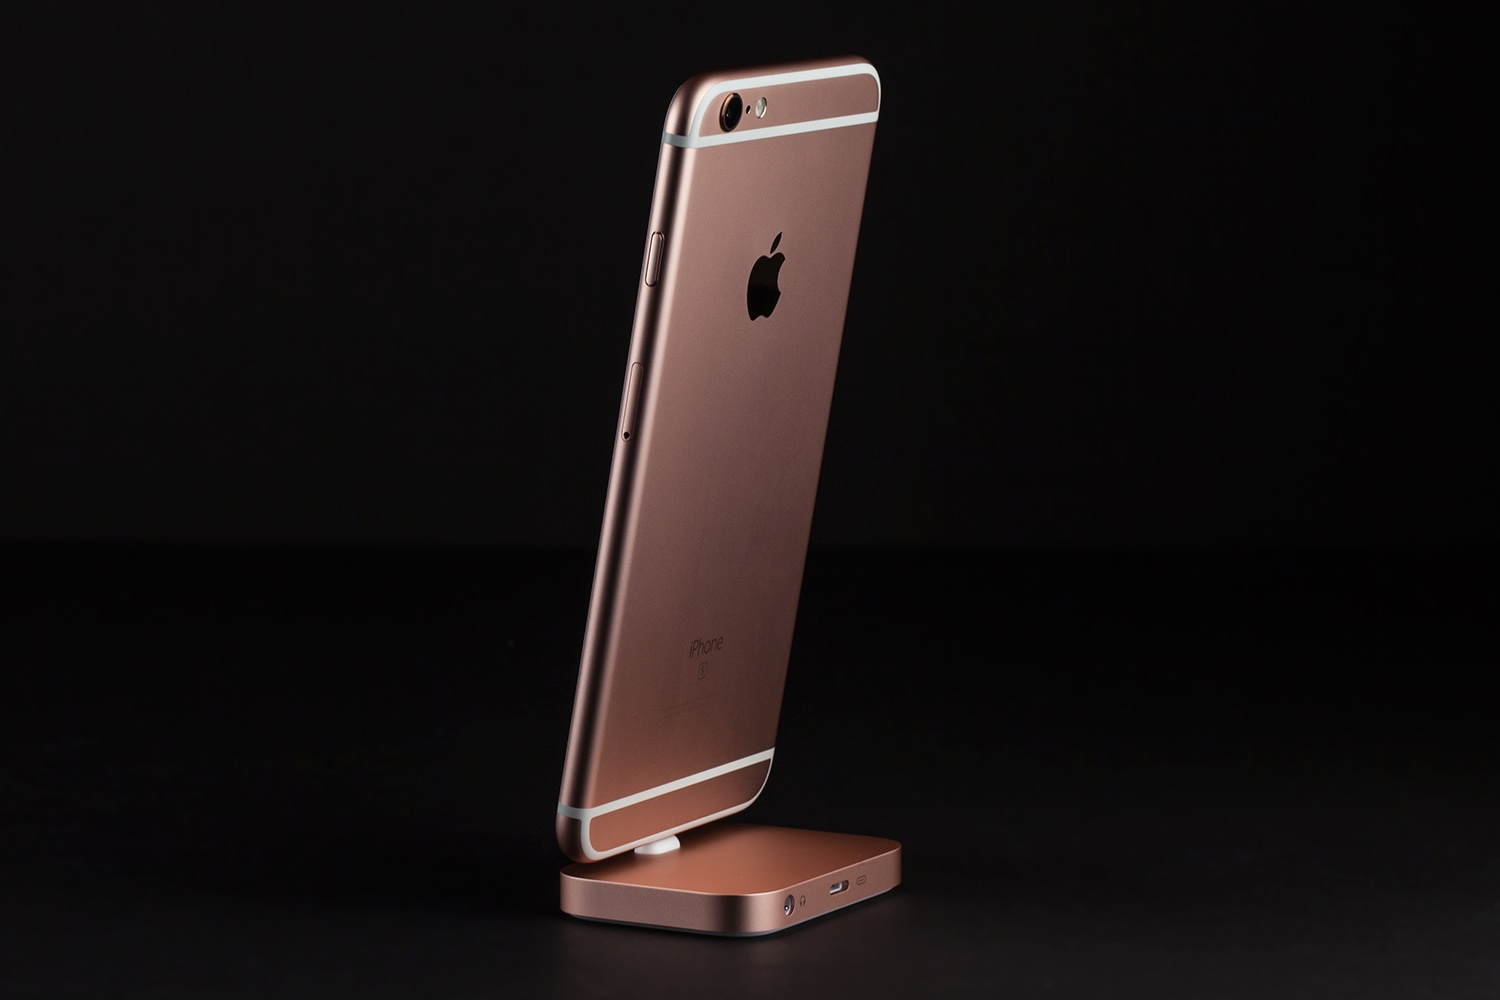 Apple Iphone 6s Plus 64gb Rose Gold Mkt22l A Version Se The 12 Megapixel Isight Camera Captures Sharp Detailed Photos It Takes Brilliant 4k Video Up To Four Times Resolution Of 1080p Hd